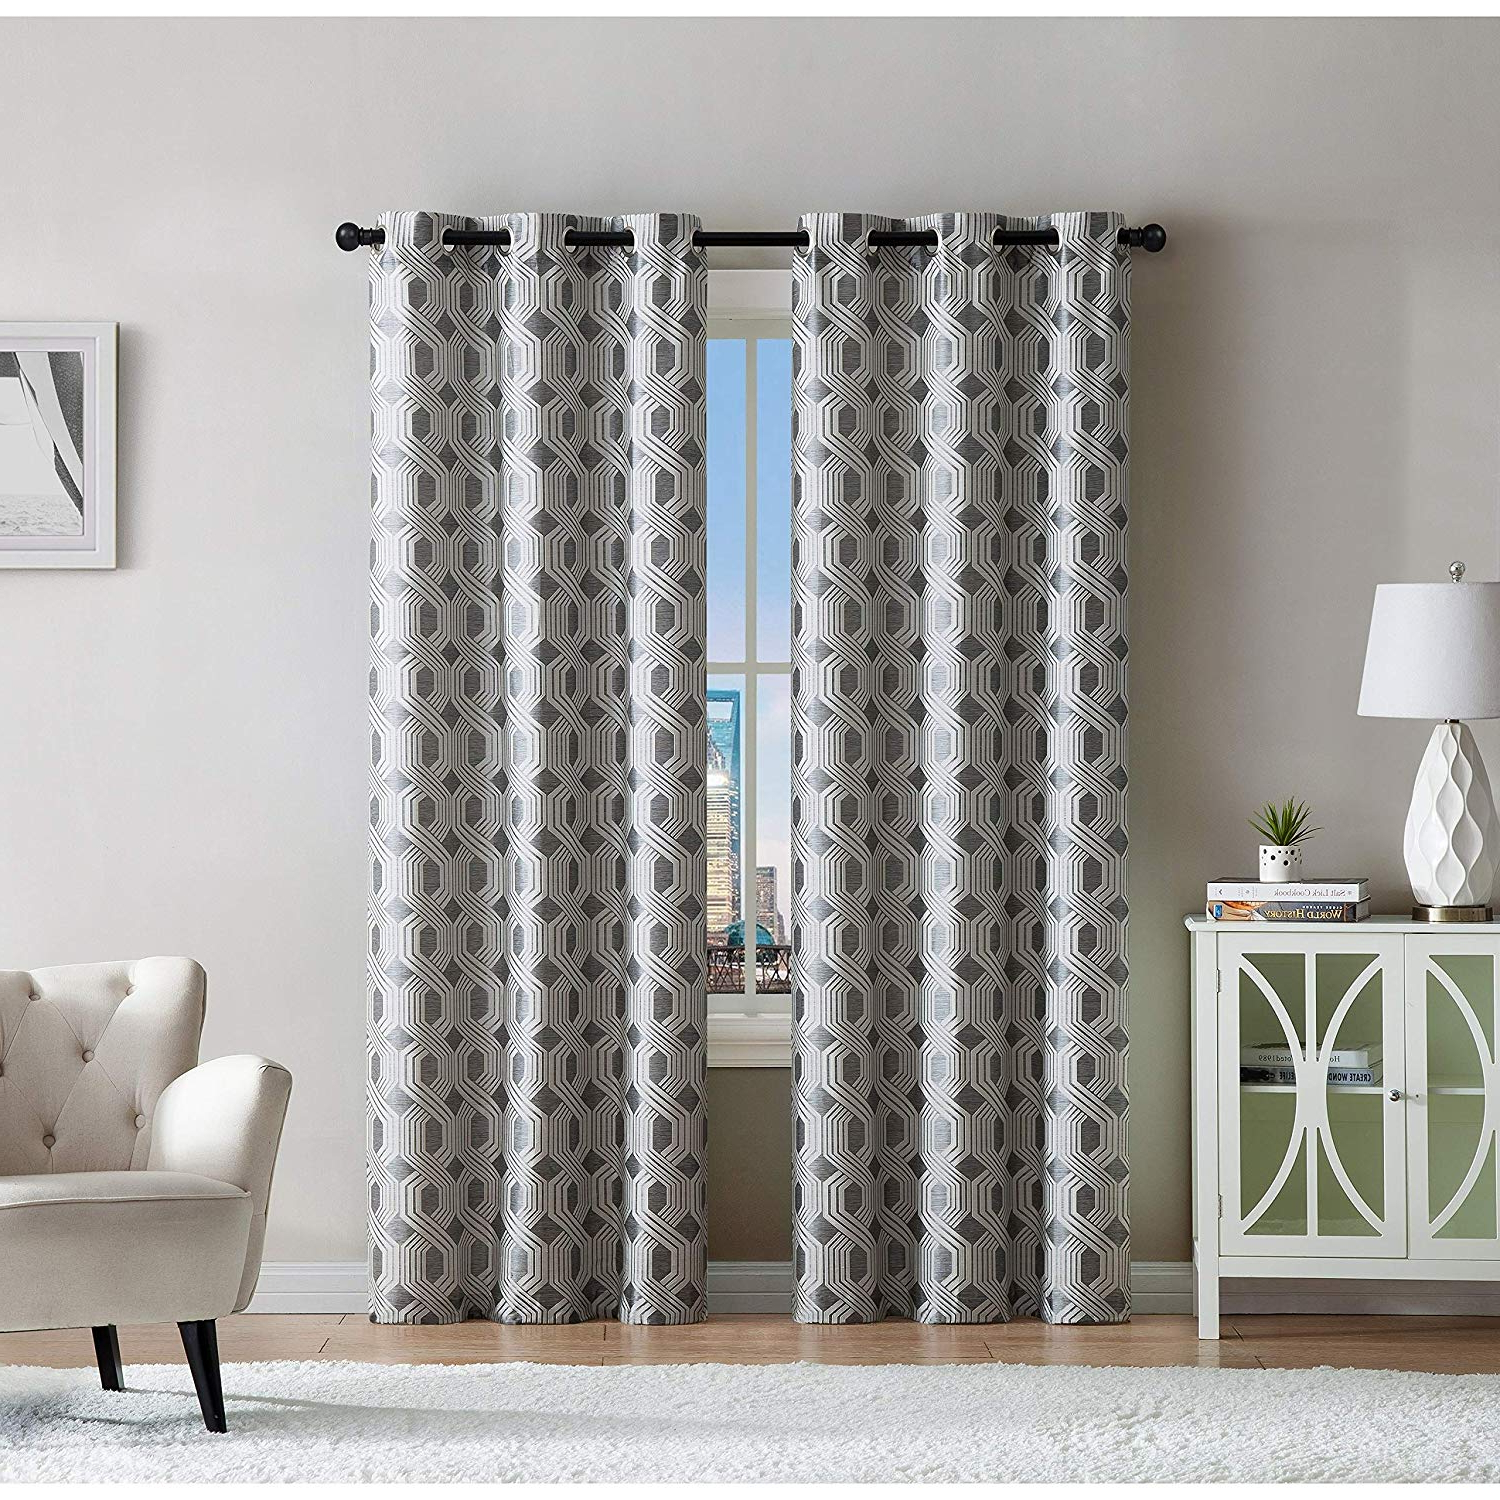 Vcny Home Eli Window Treatment Curtains 76X84, Blue Intended For Well Known Caldwell Curtain Panel Pairs (View 17 of 20)